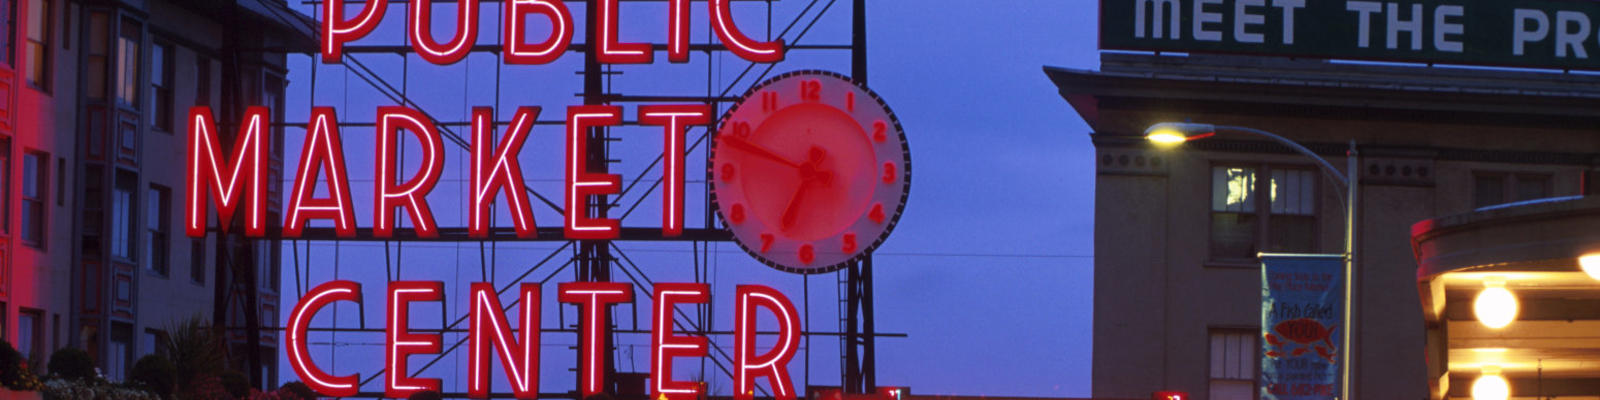 The iconic Public Market Place neon sign at the Pike Place Markets in Seattle